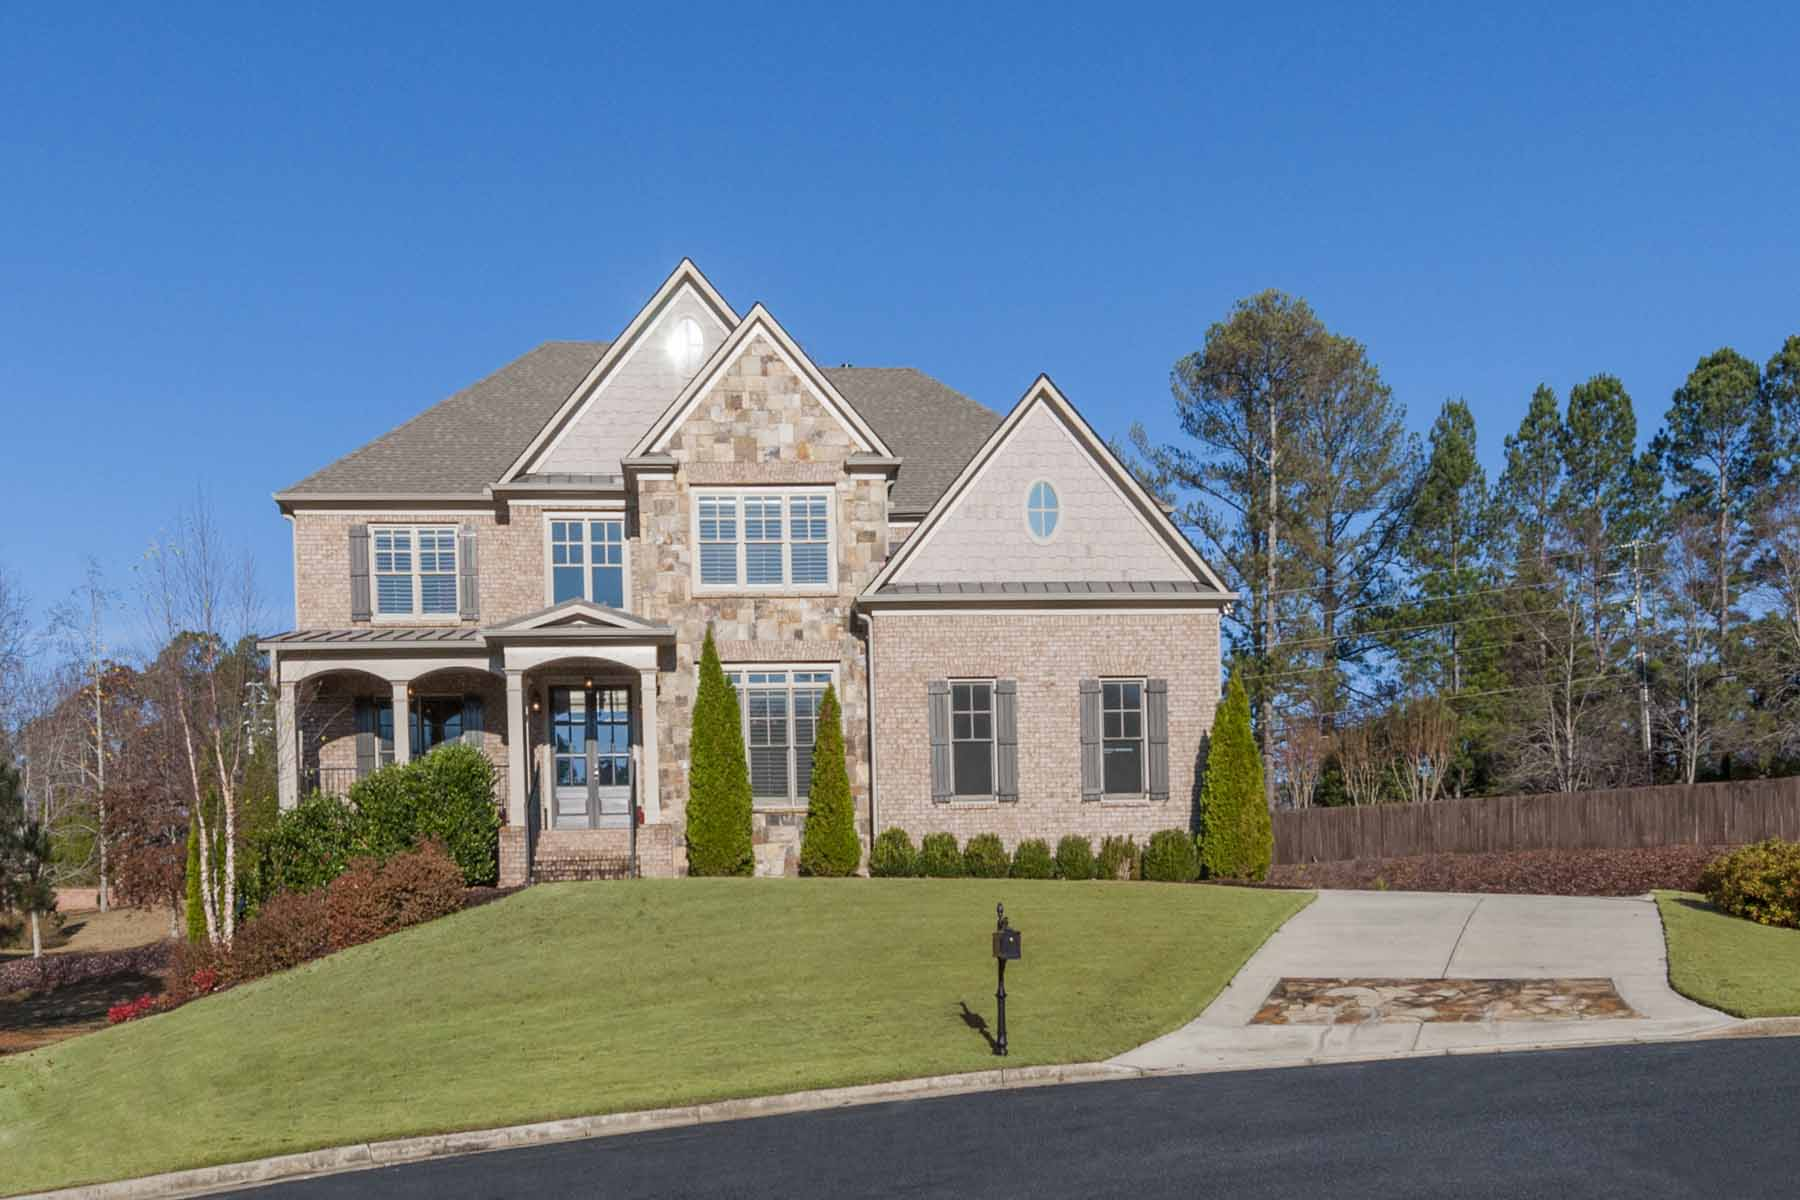 단독 가정 주택 용 매매 에 Desirable Executive Living In North Atlanta 1055 Cascade Run Court Suwanee, 조지아, 30024 미국